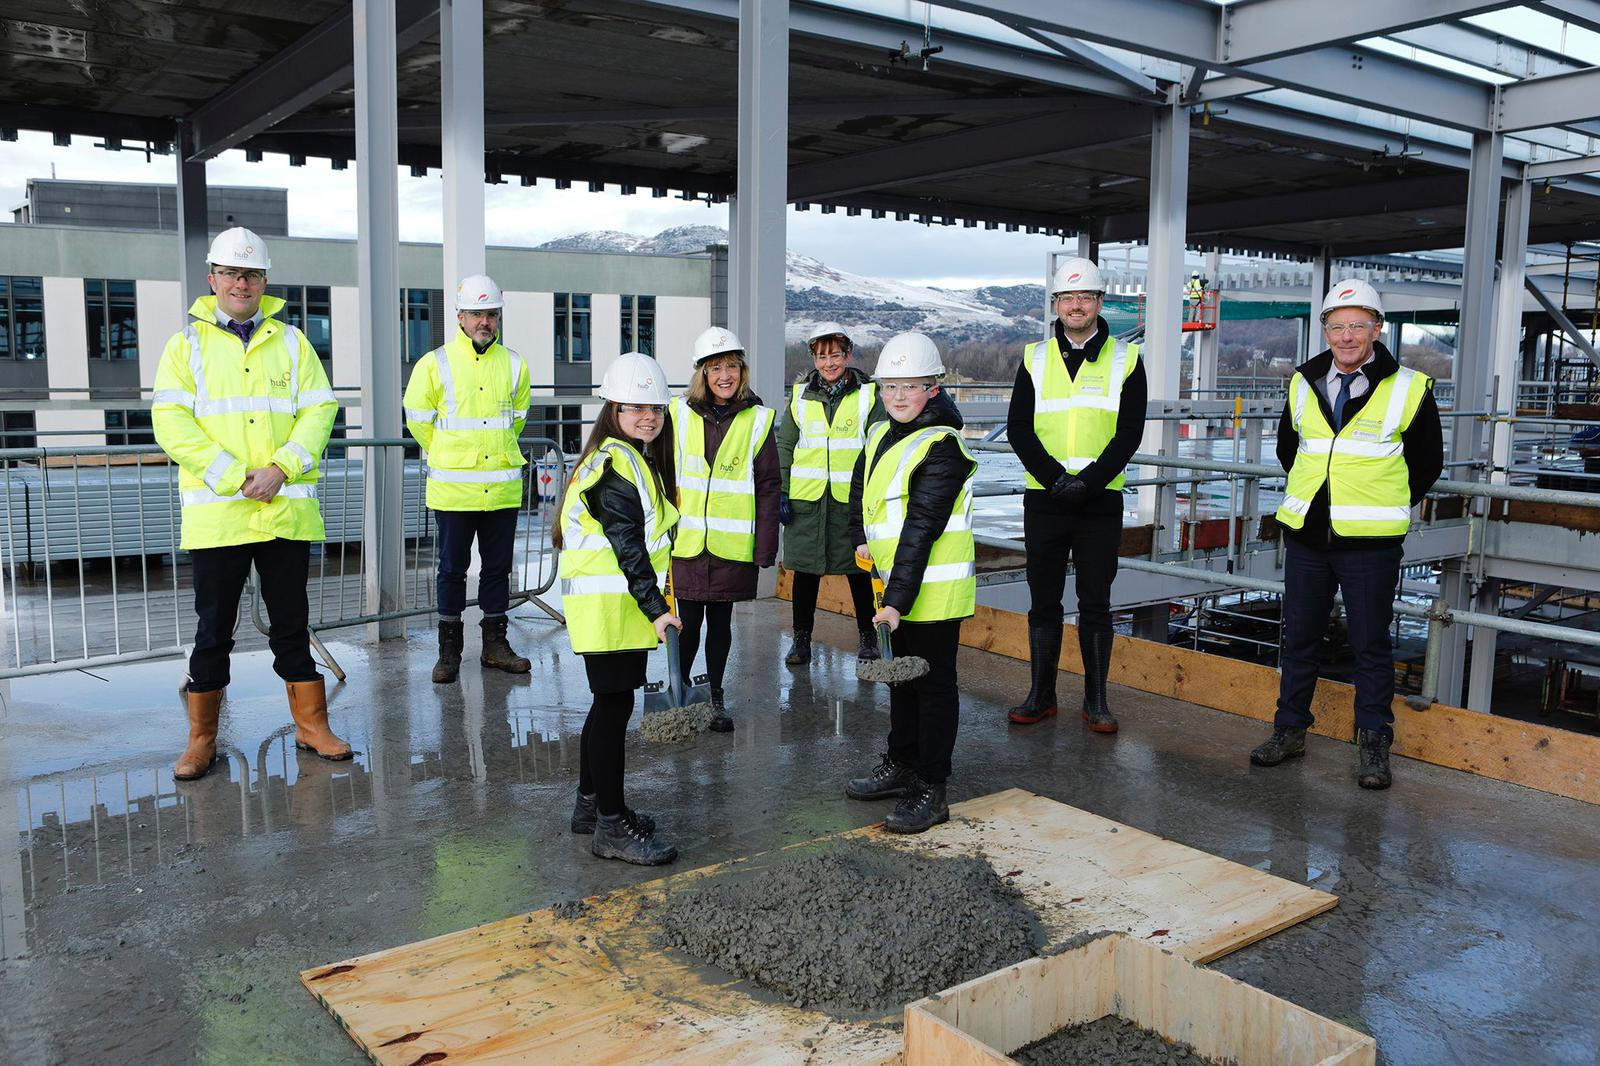 students stand with spades of cement for the Topping out ceremony of the new school